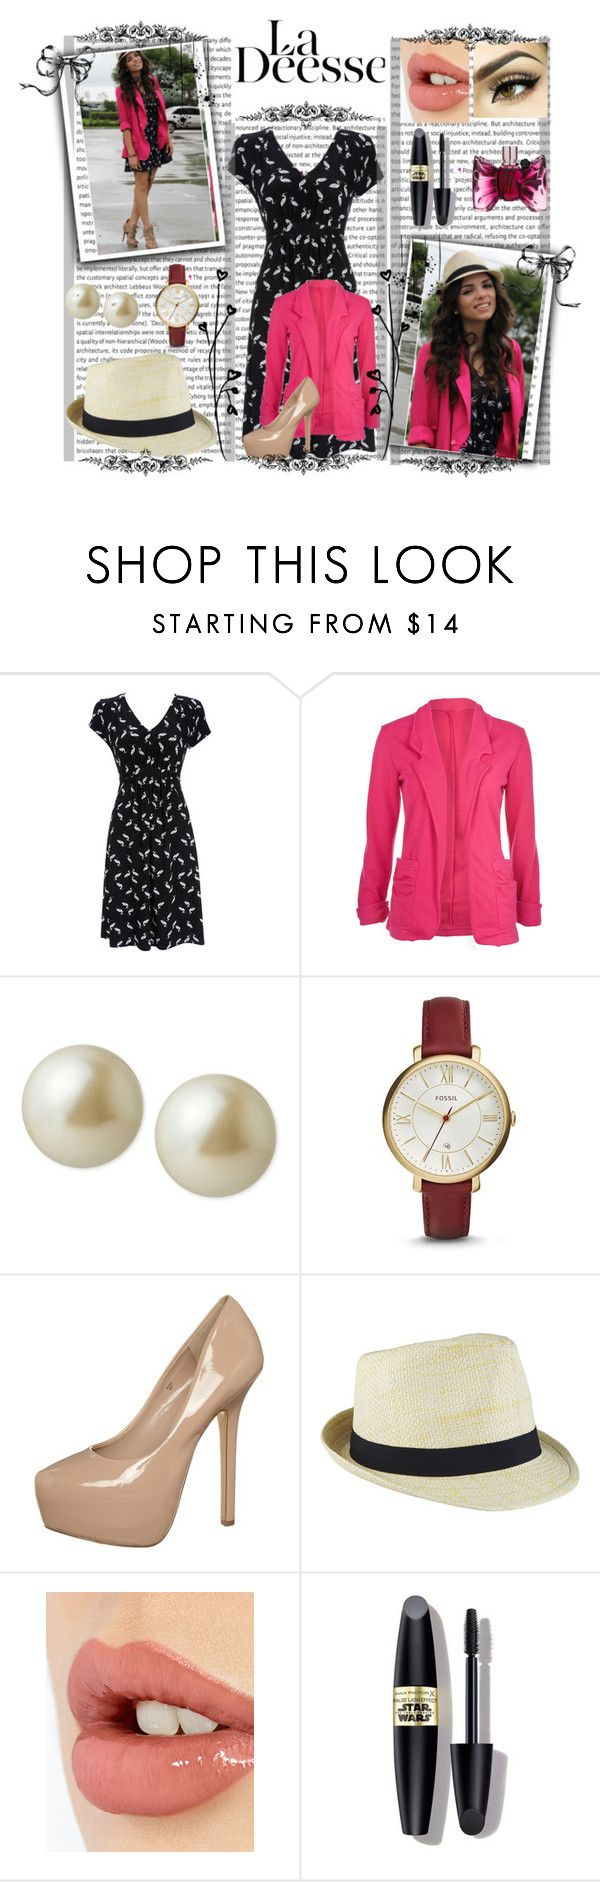 """""""Casual Dress with Coat"""" by zafia-13 ❤ liked on Polyvore featuring Wallis, Carolee, FOSSIL, Steve Madden, Charlotte Tilbury, Max Factor, Viktor & Rolf, women's clothing, women's fashion and women"""